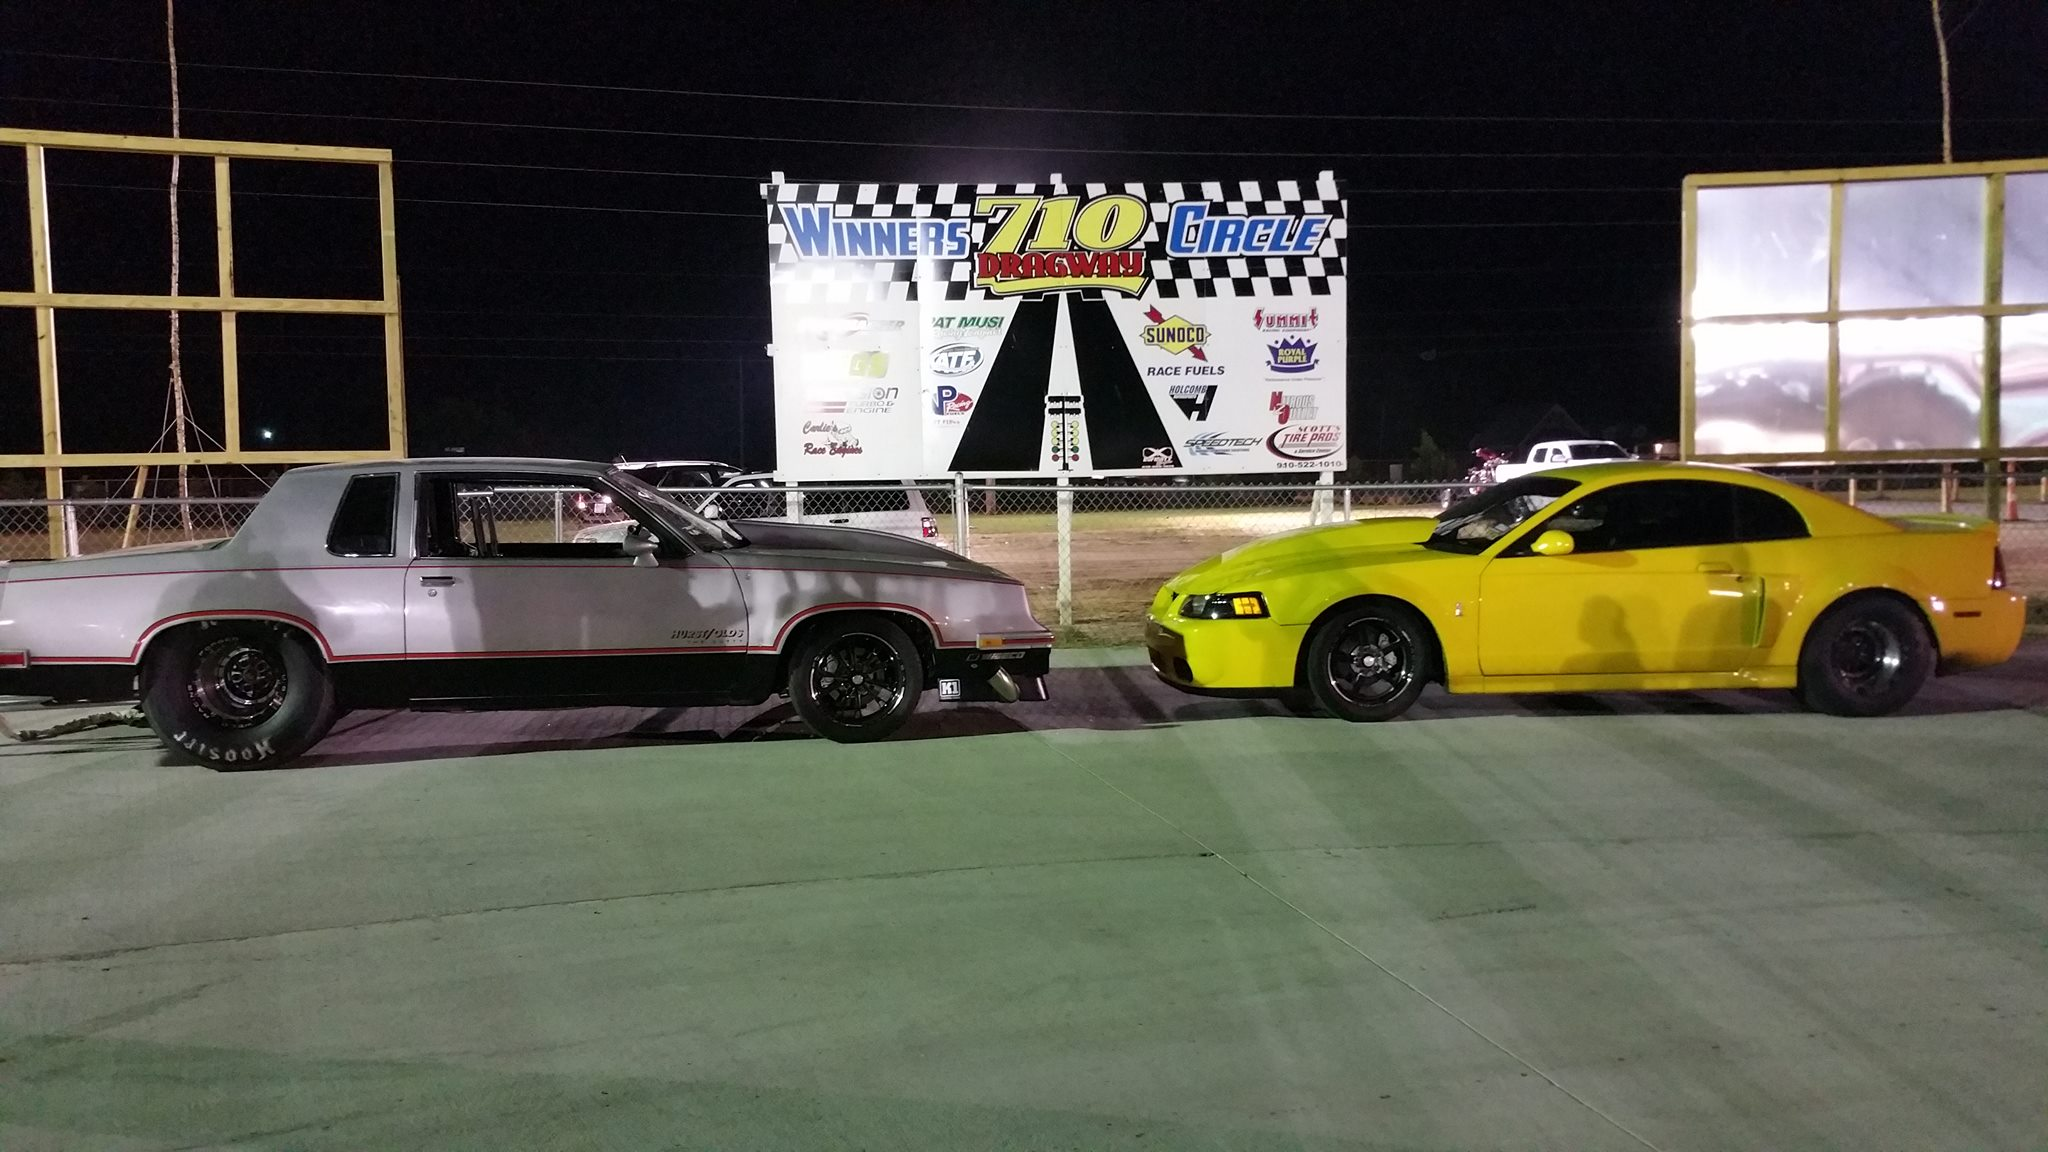 710 Street Outlaws 21